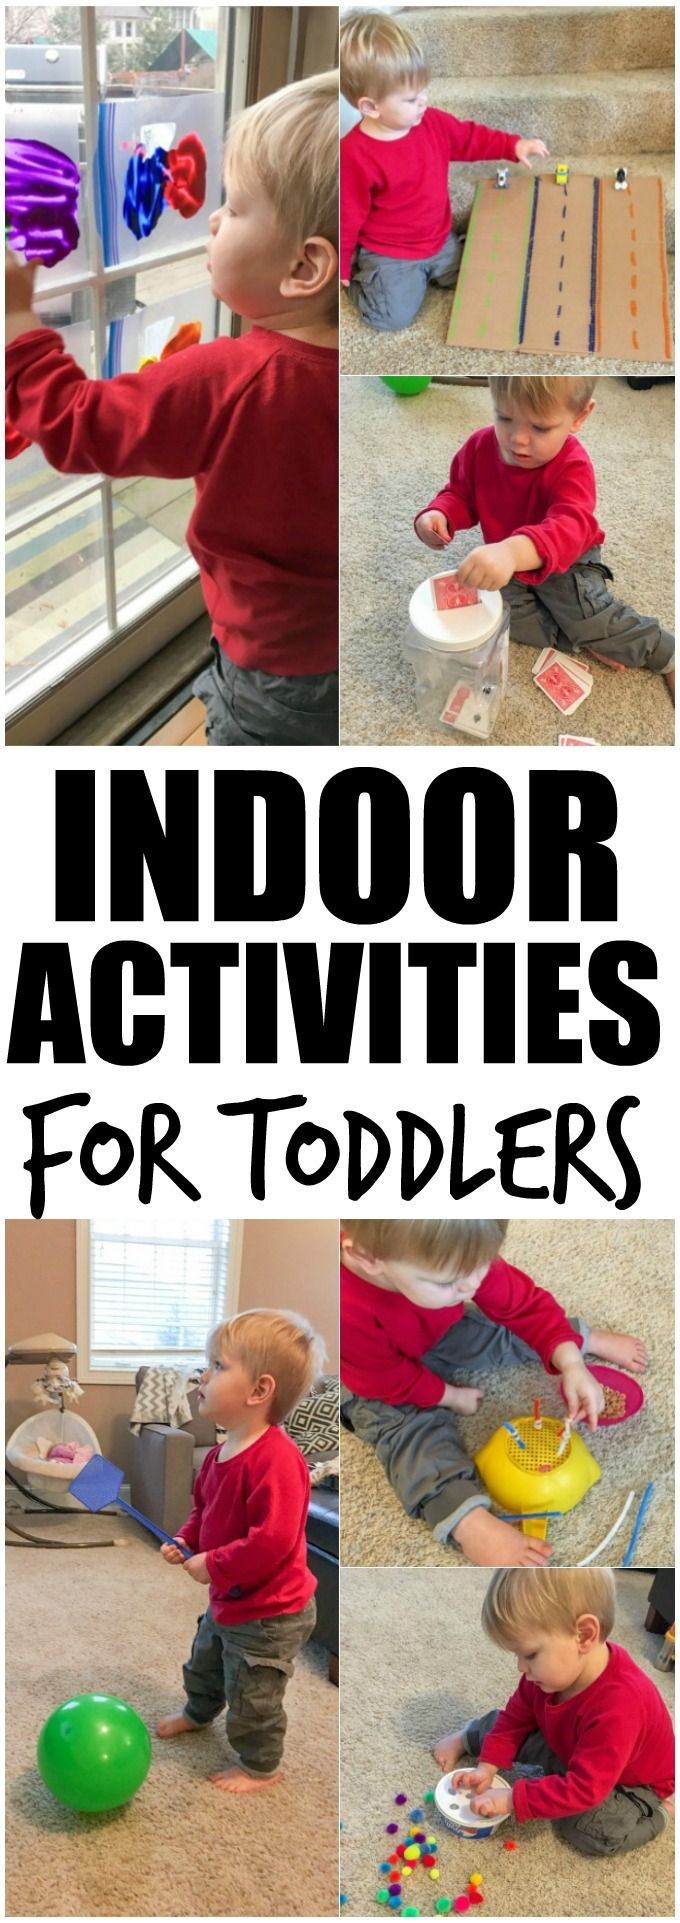 Indoor Activities for Toddlers   The Lean Green Bean